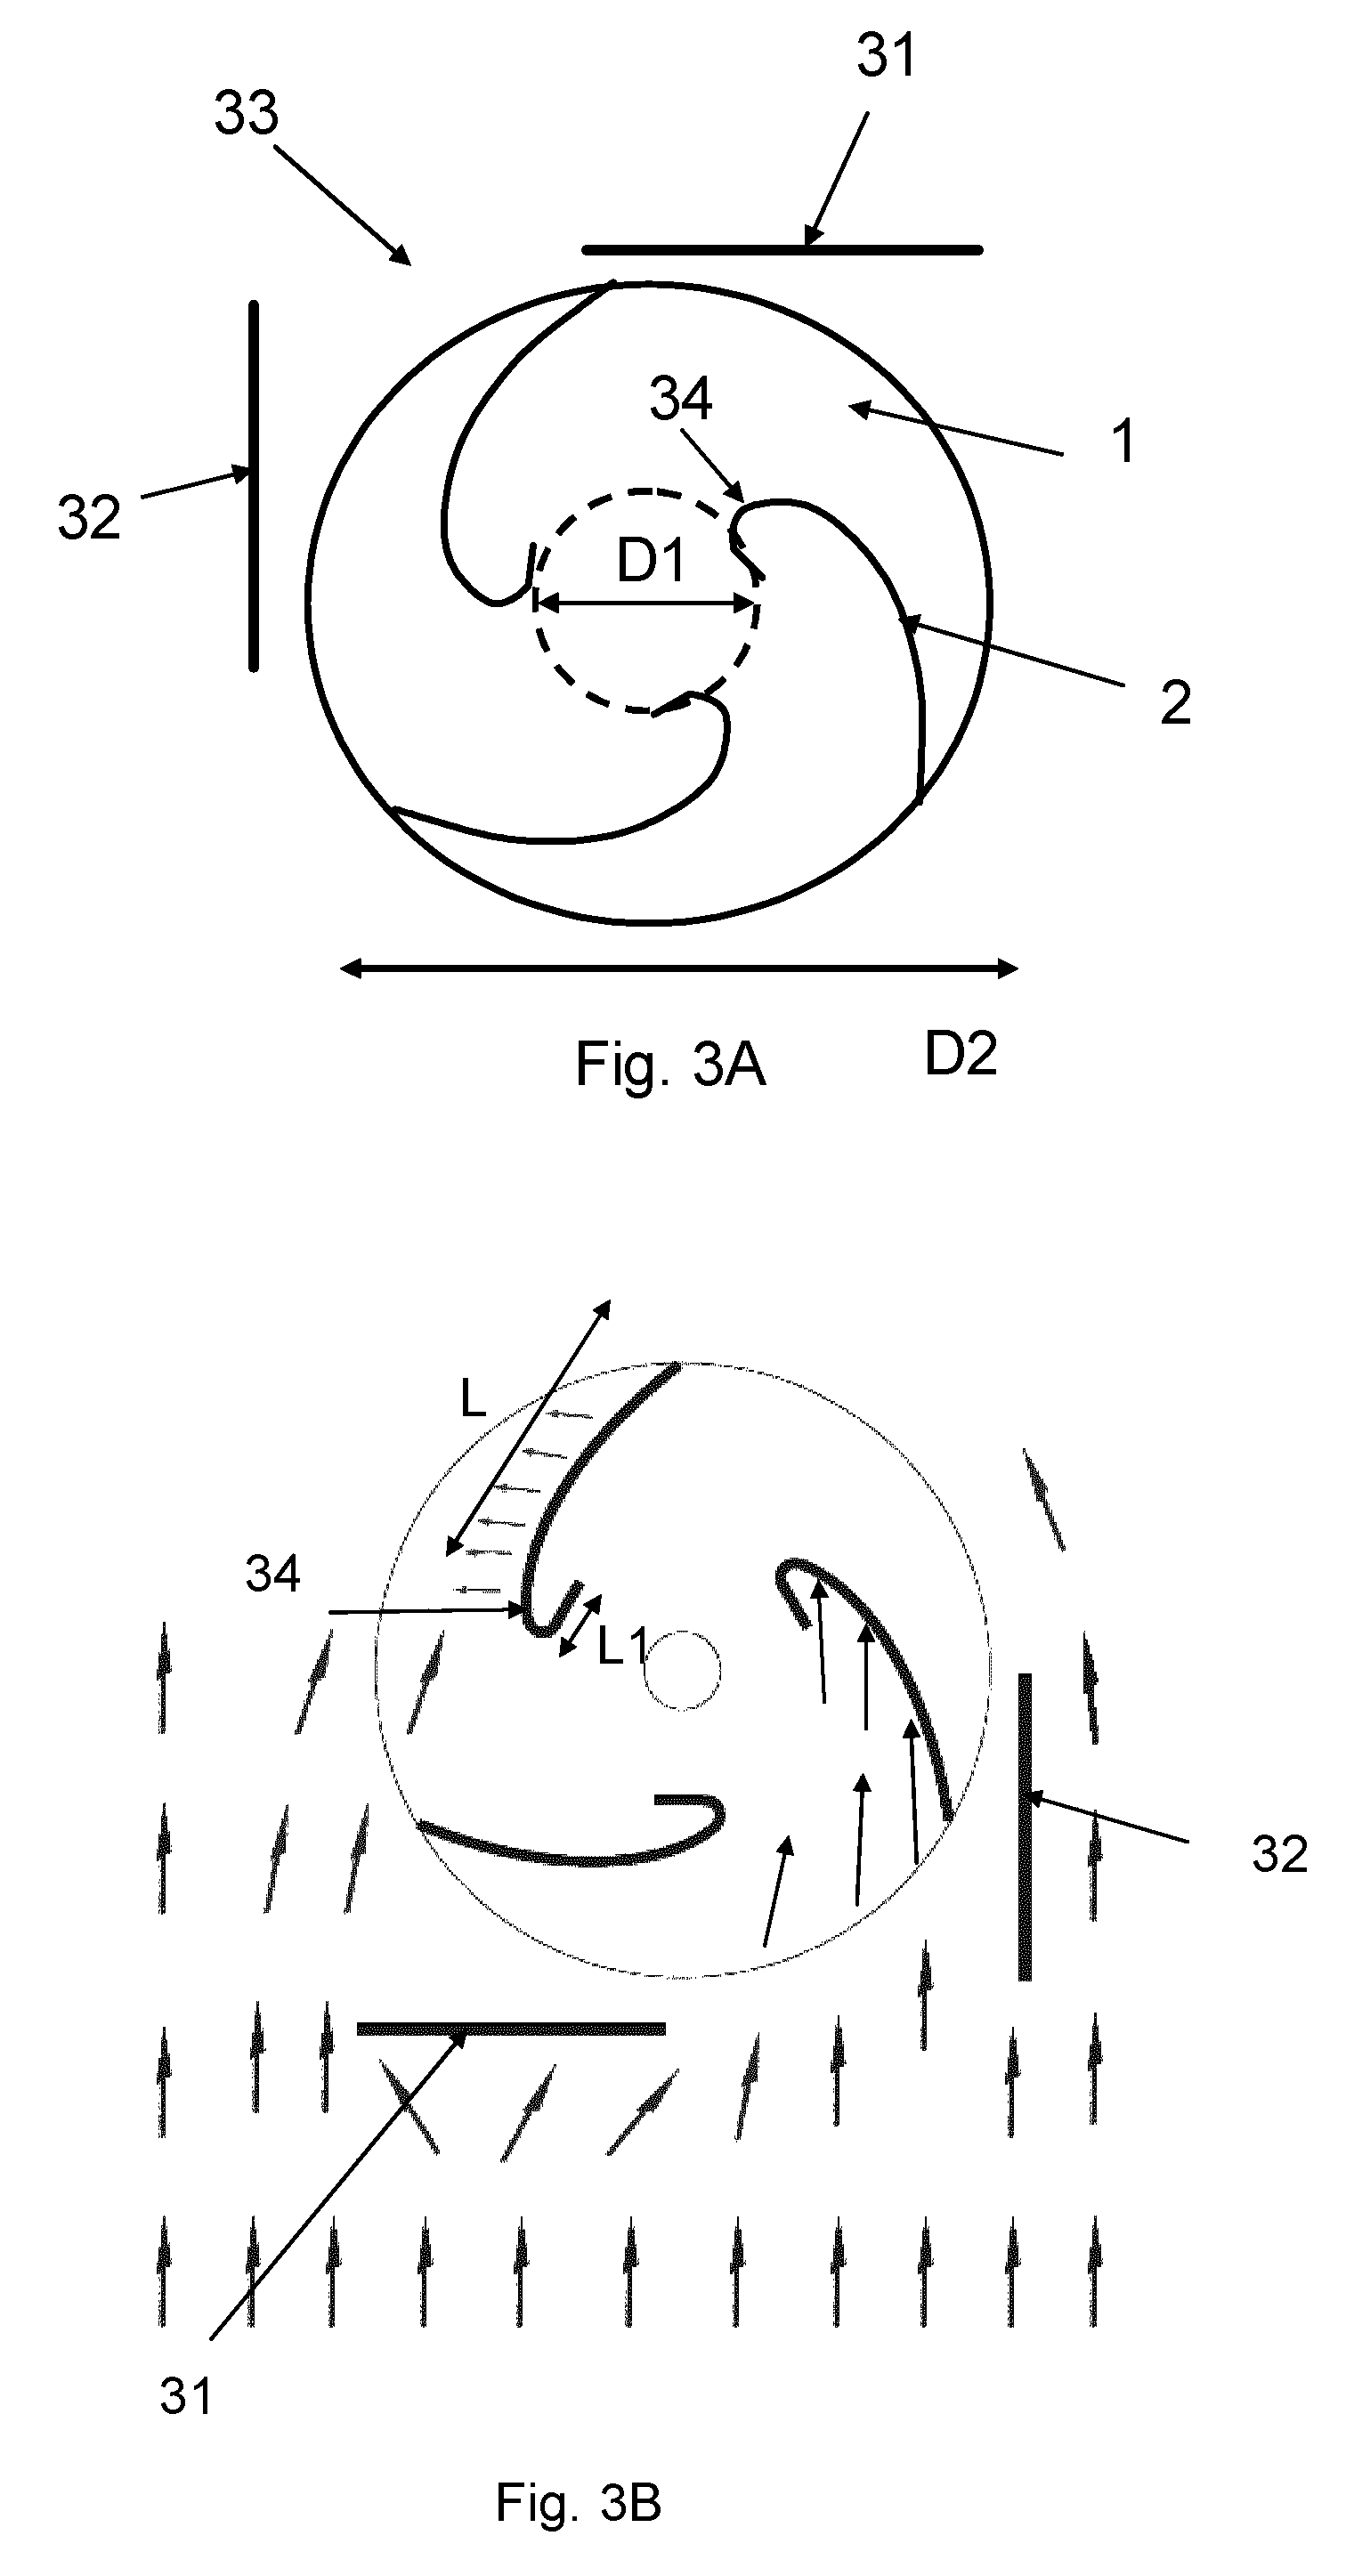 hight resolution of wo2012089806a1 wind turbine with vertical axis